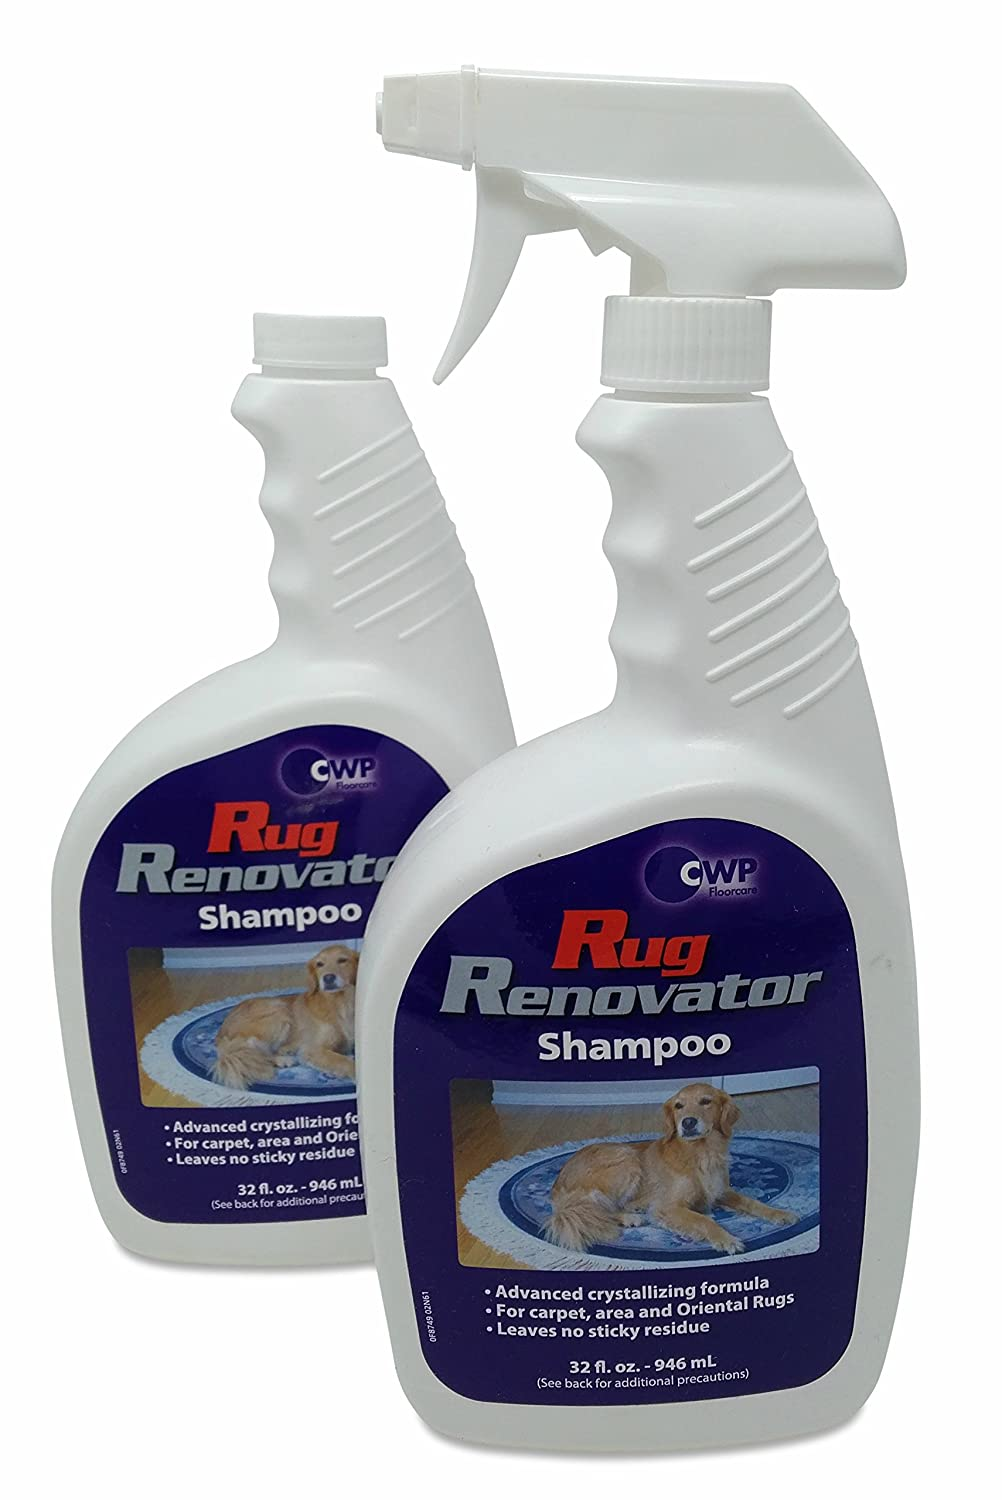 The Rug Renovator™ Shampoo - Carpet and Fabric Cleaner - Remove Wine, Pet Stains, Dirt from All Fabrics, Wool and Upholstery - Fragrance-Free Detergent - Liquid Foam - Two 32oz Bottles